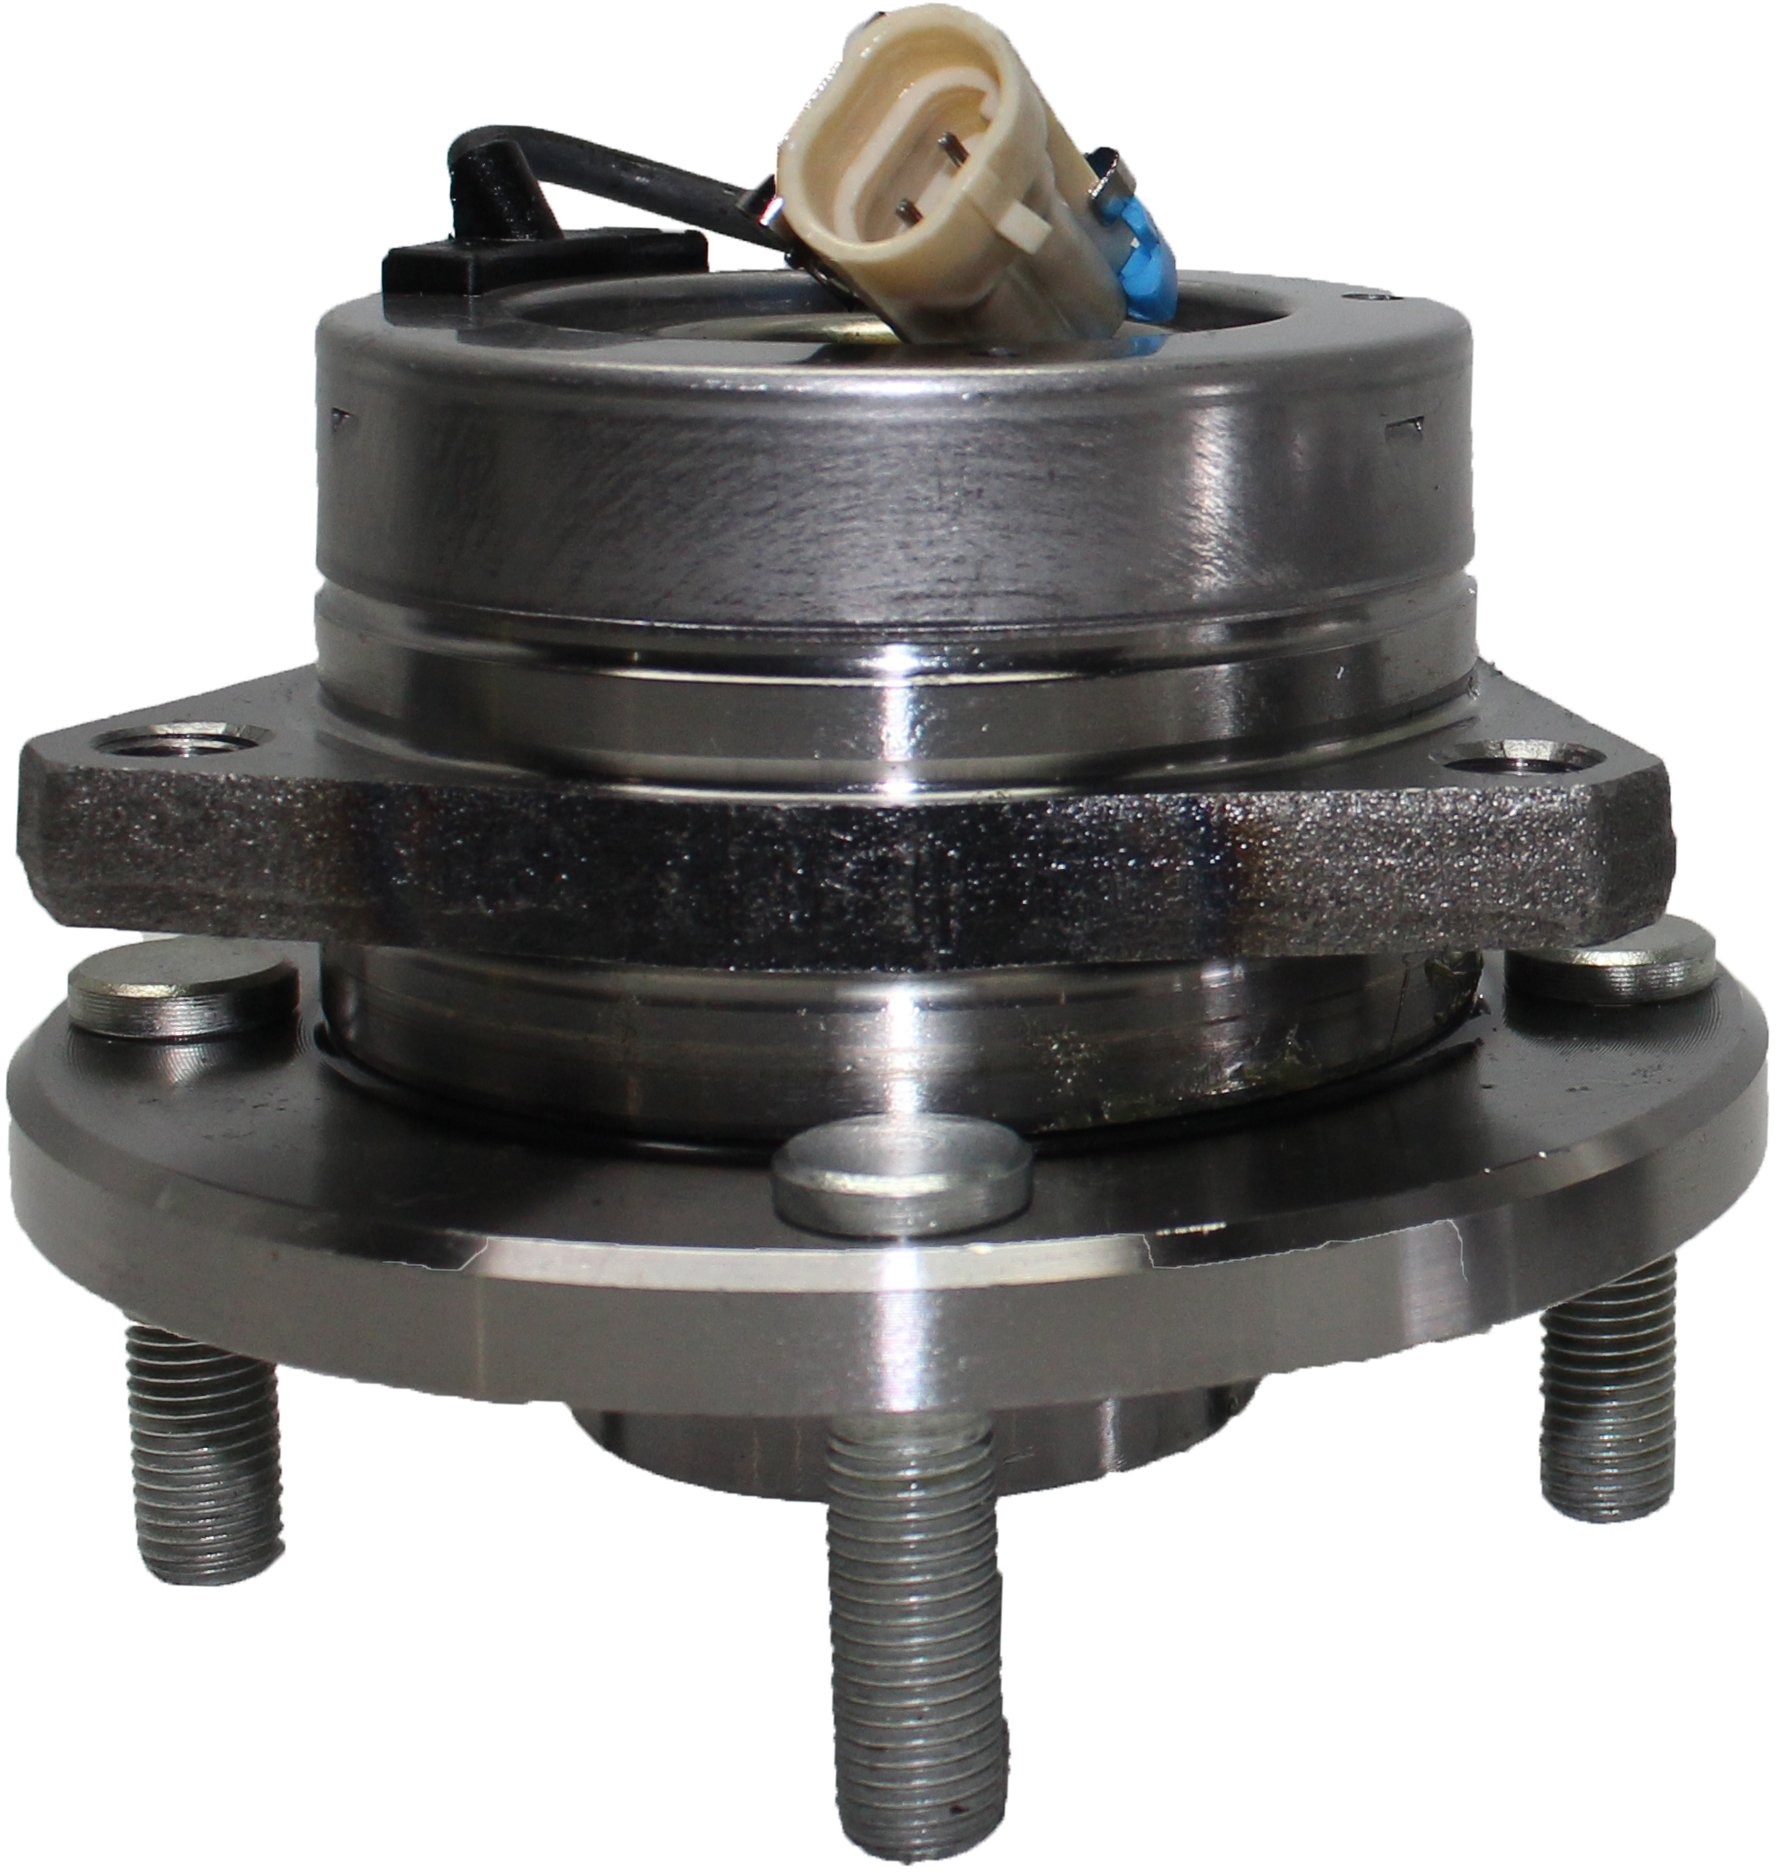 Brand New Front Wheel Hub and Bearing Assembly for 2004-06 Chevy Epica, Suzuki Verona 4 Lug W/ABS 513250 by Detroit Axle